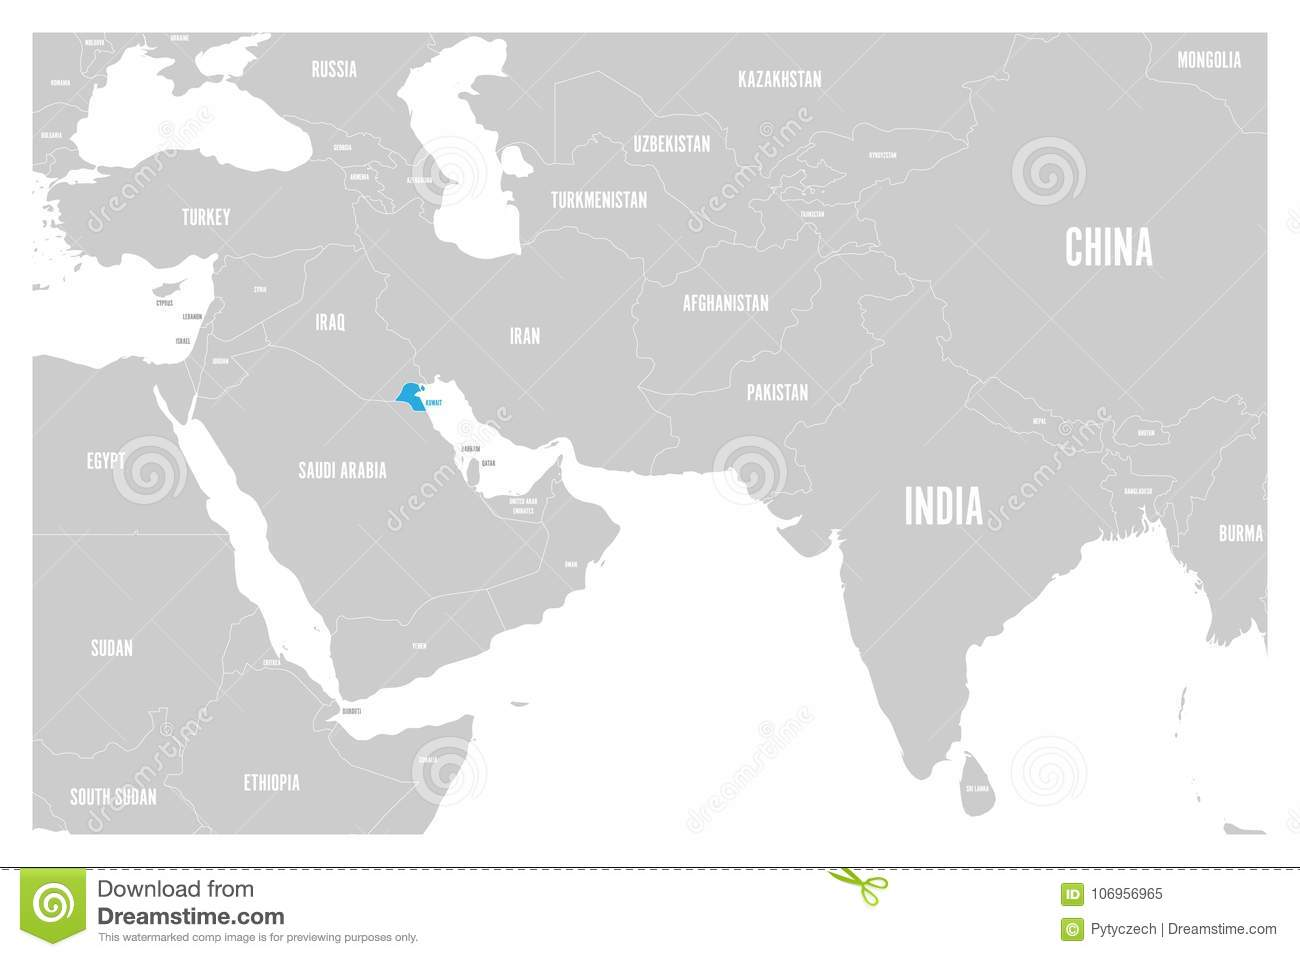 Kuwait blue marked in political map of south asia and middle east download comp gumiabroncs Images